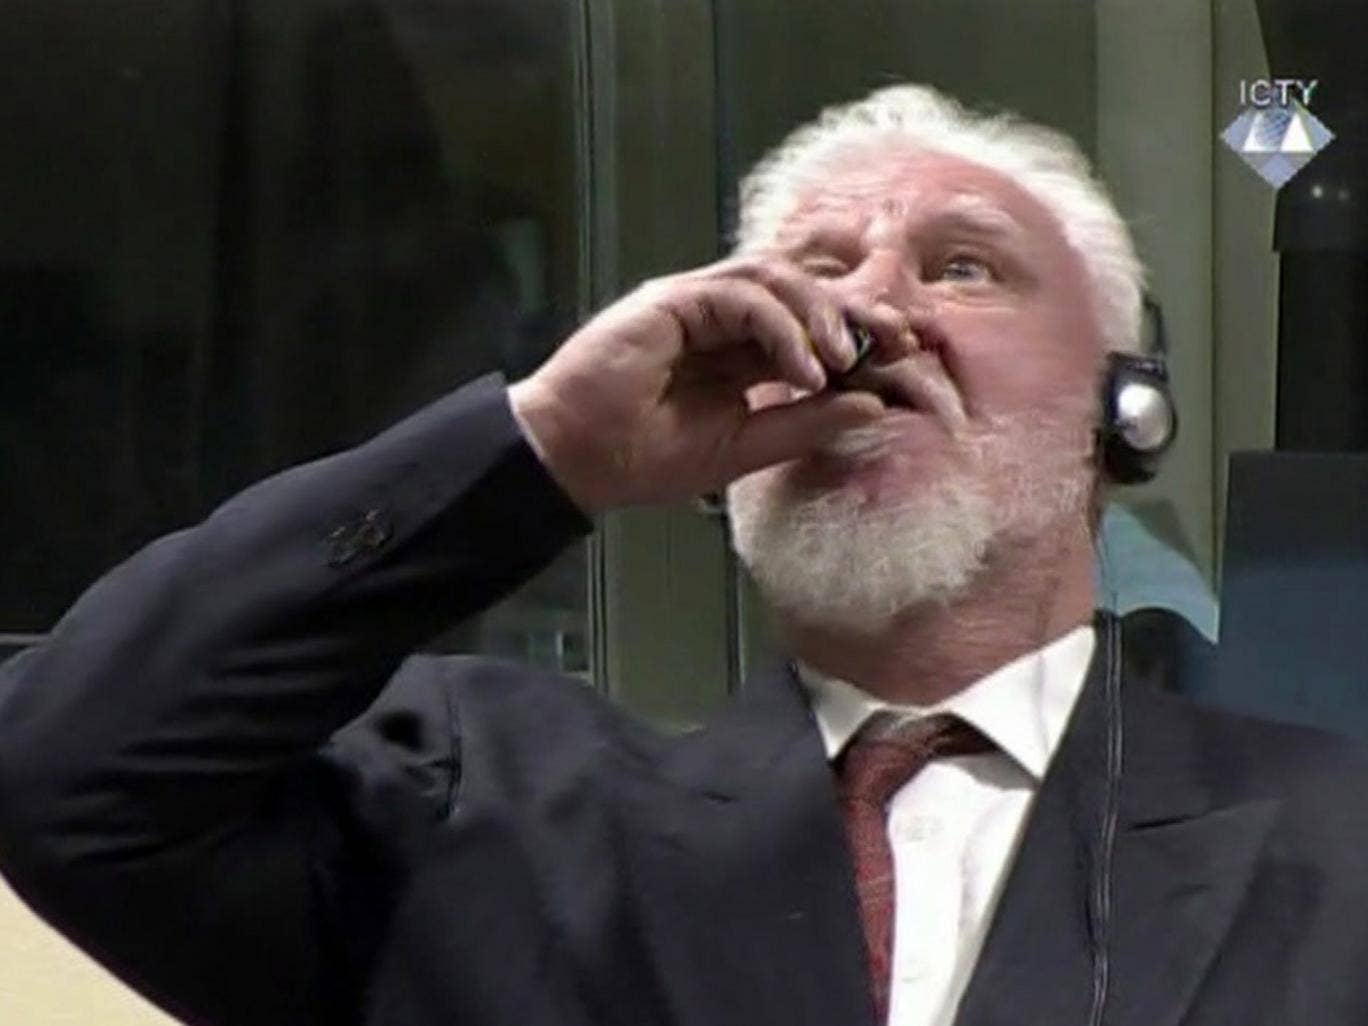 Slobodan Praljak Genocide >> Slobodan Praljak Death Bosnian Croat War Crimes Suspect Dies After